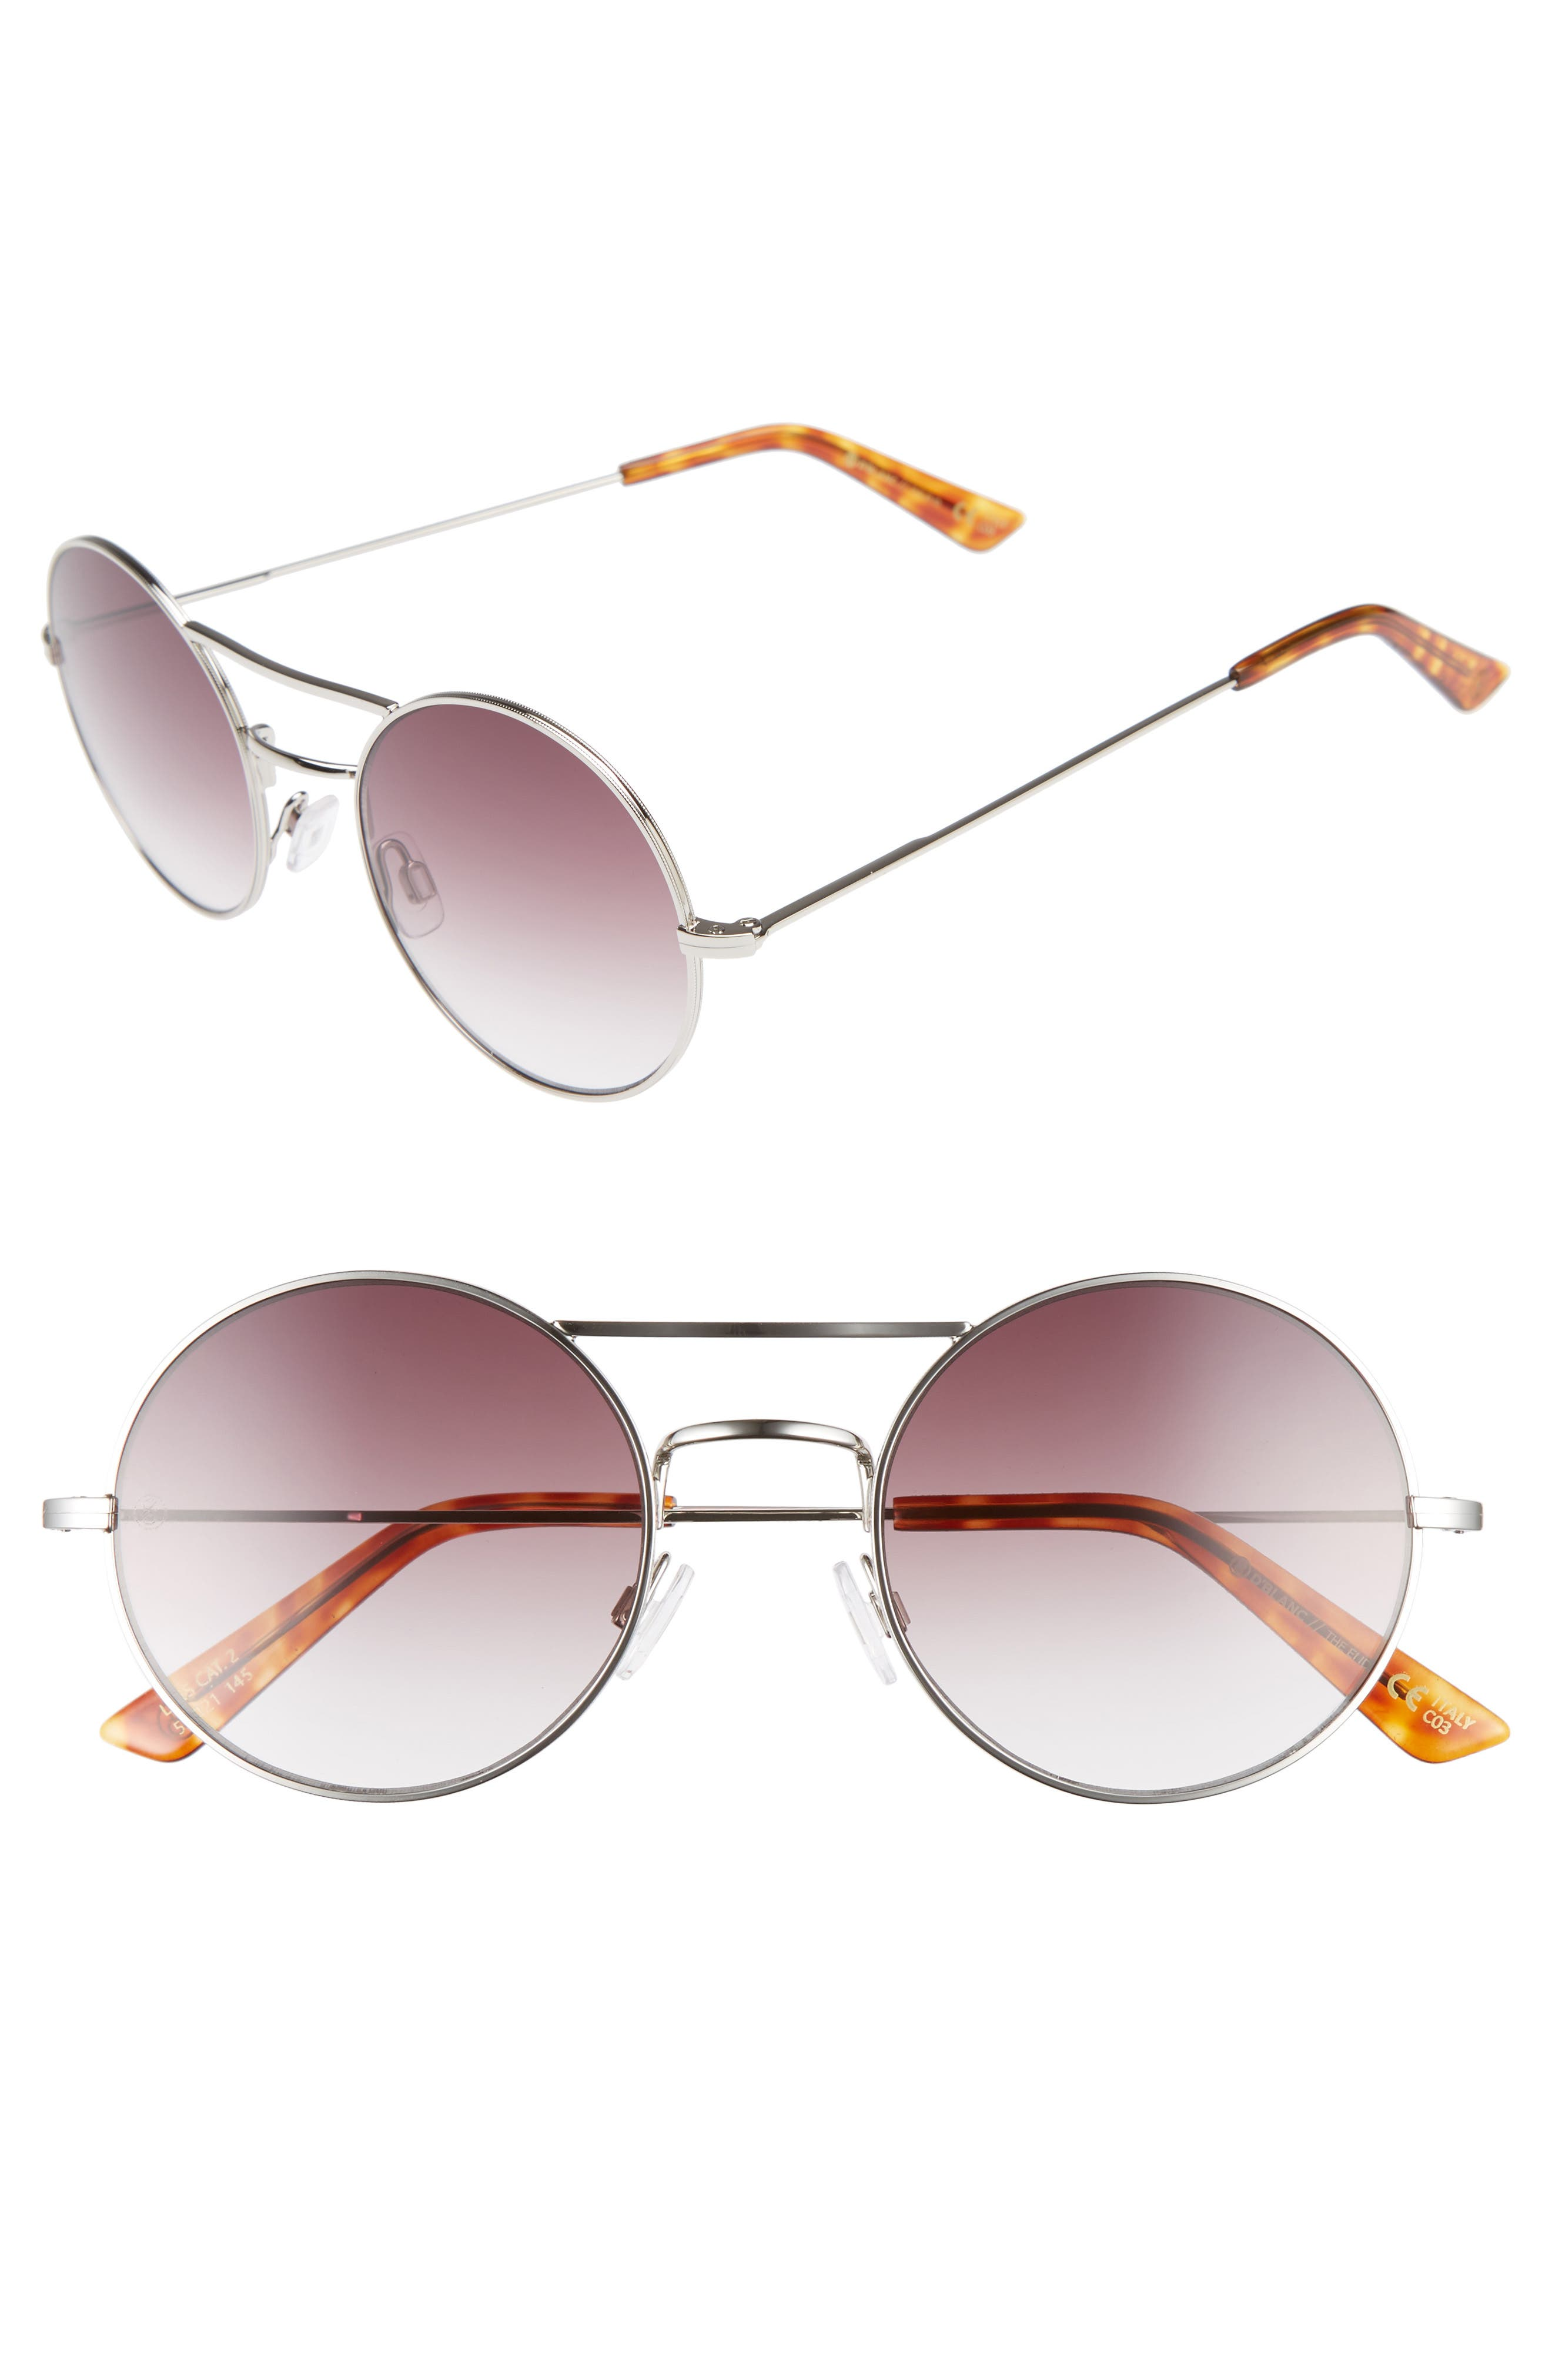 Main Image - D'BLANC The End 52mm Gradient Round Sunglasses